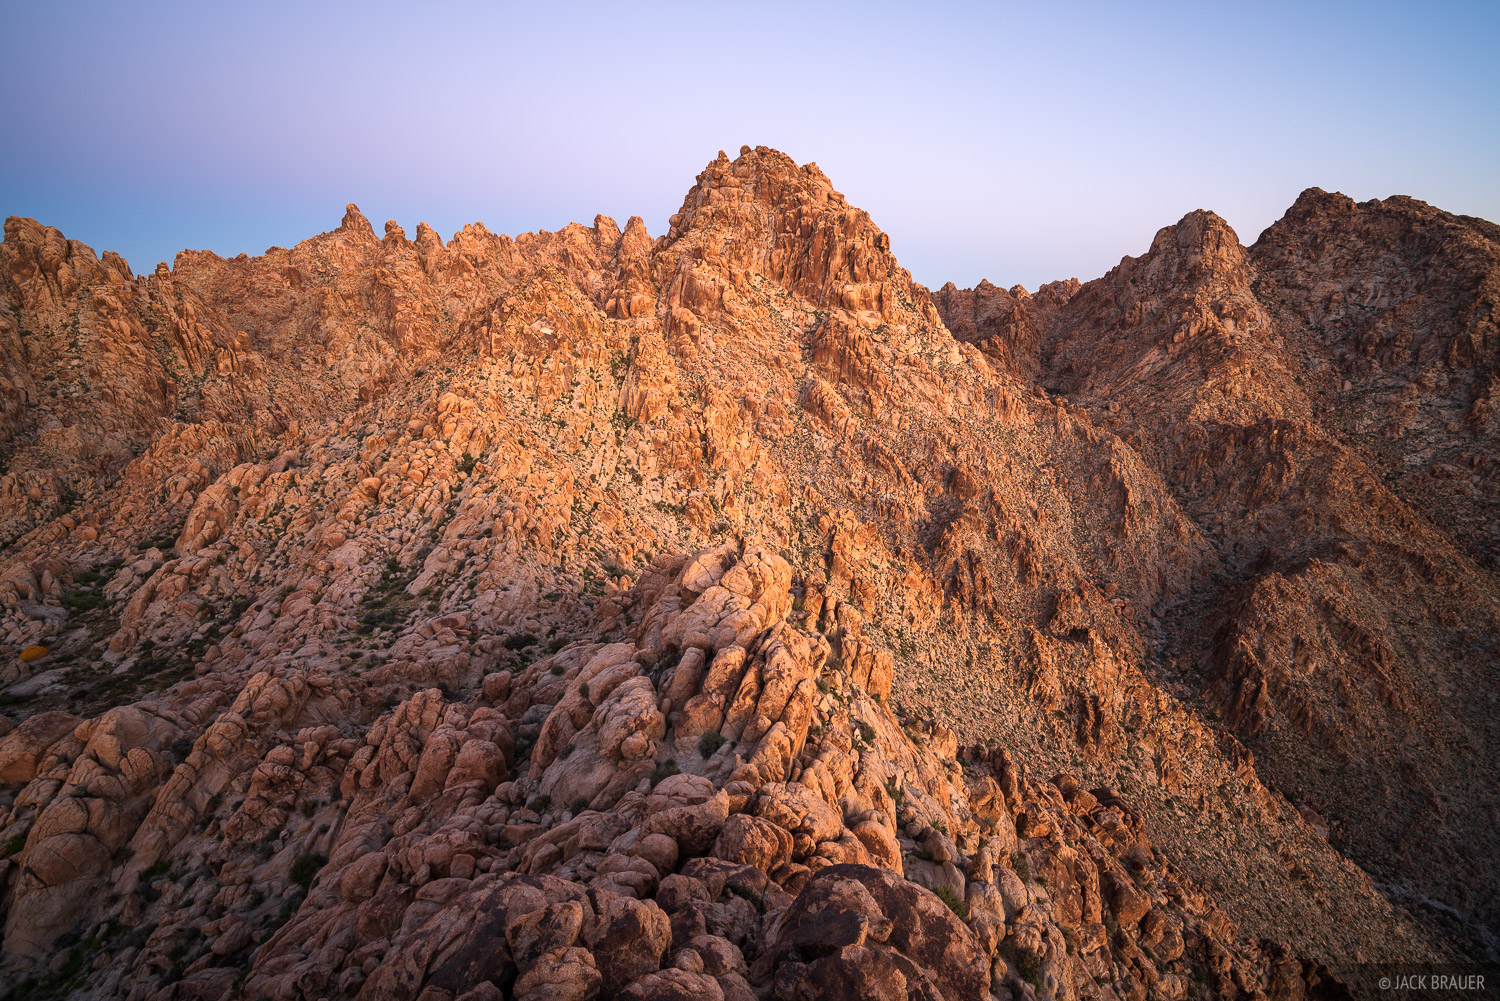 California, Coxcomb Mountains, Joshua Tree National Park, Mojave Desert, photo